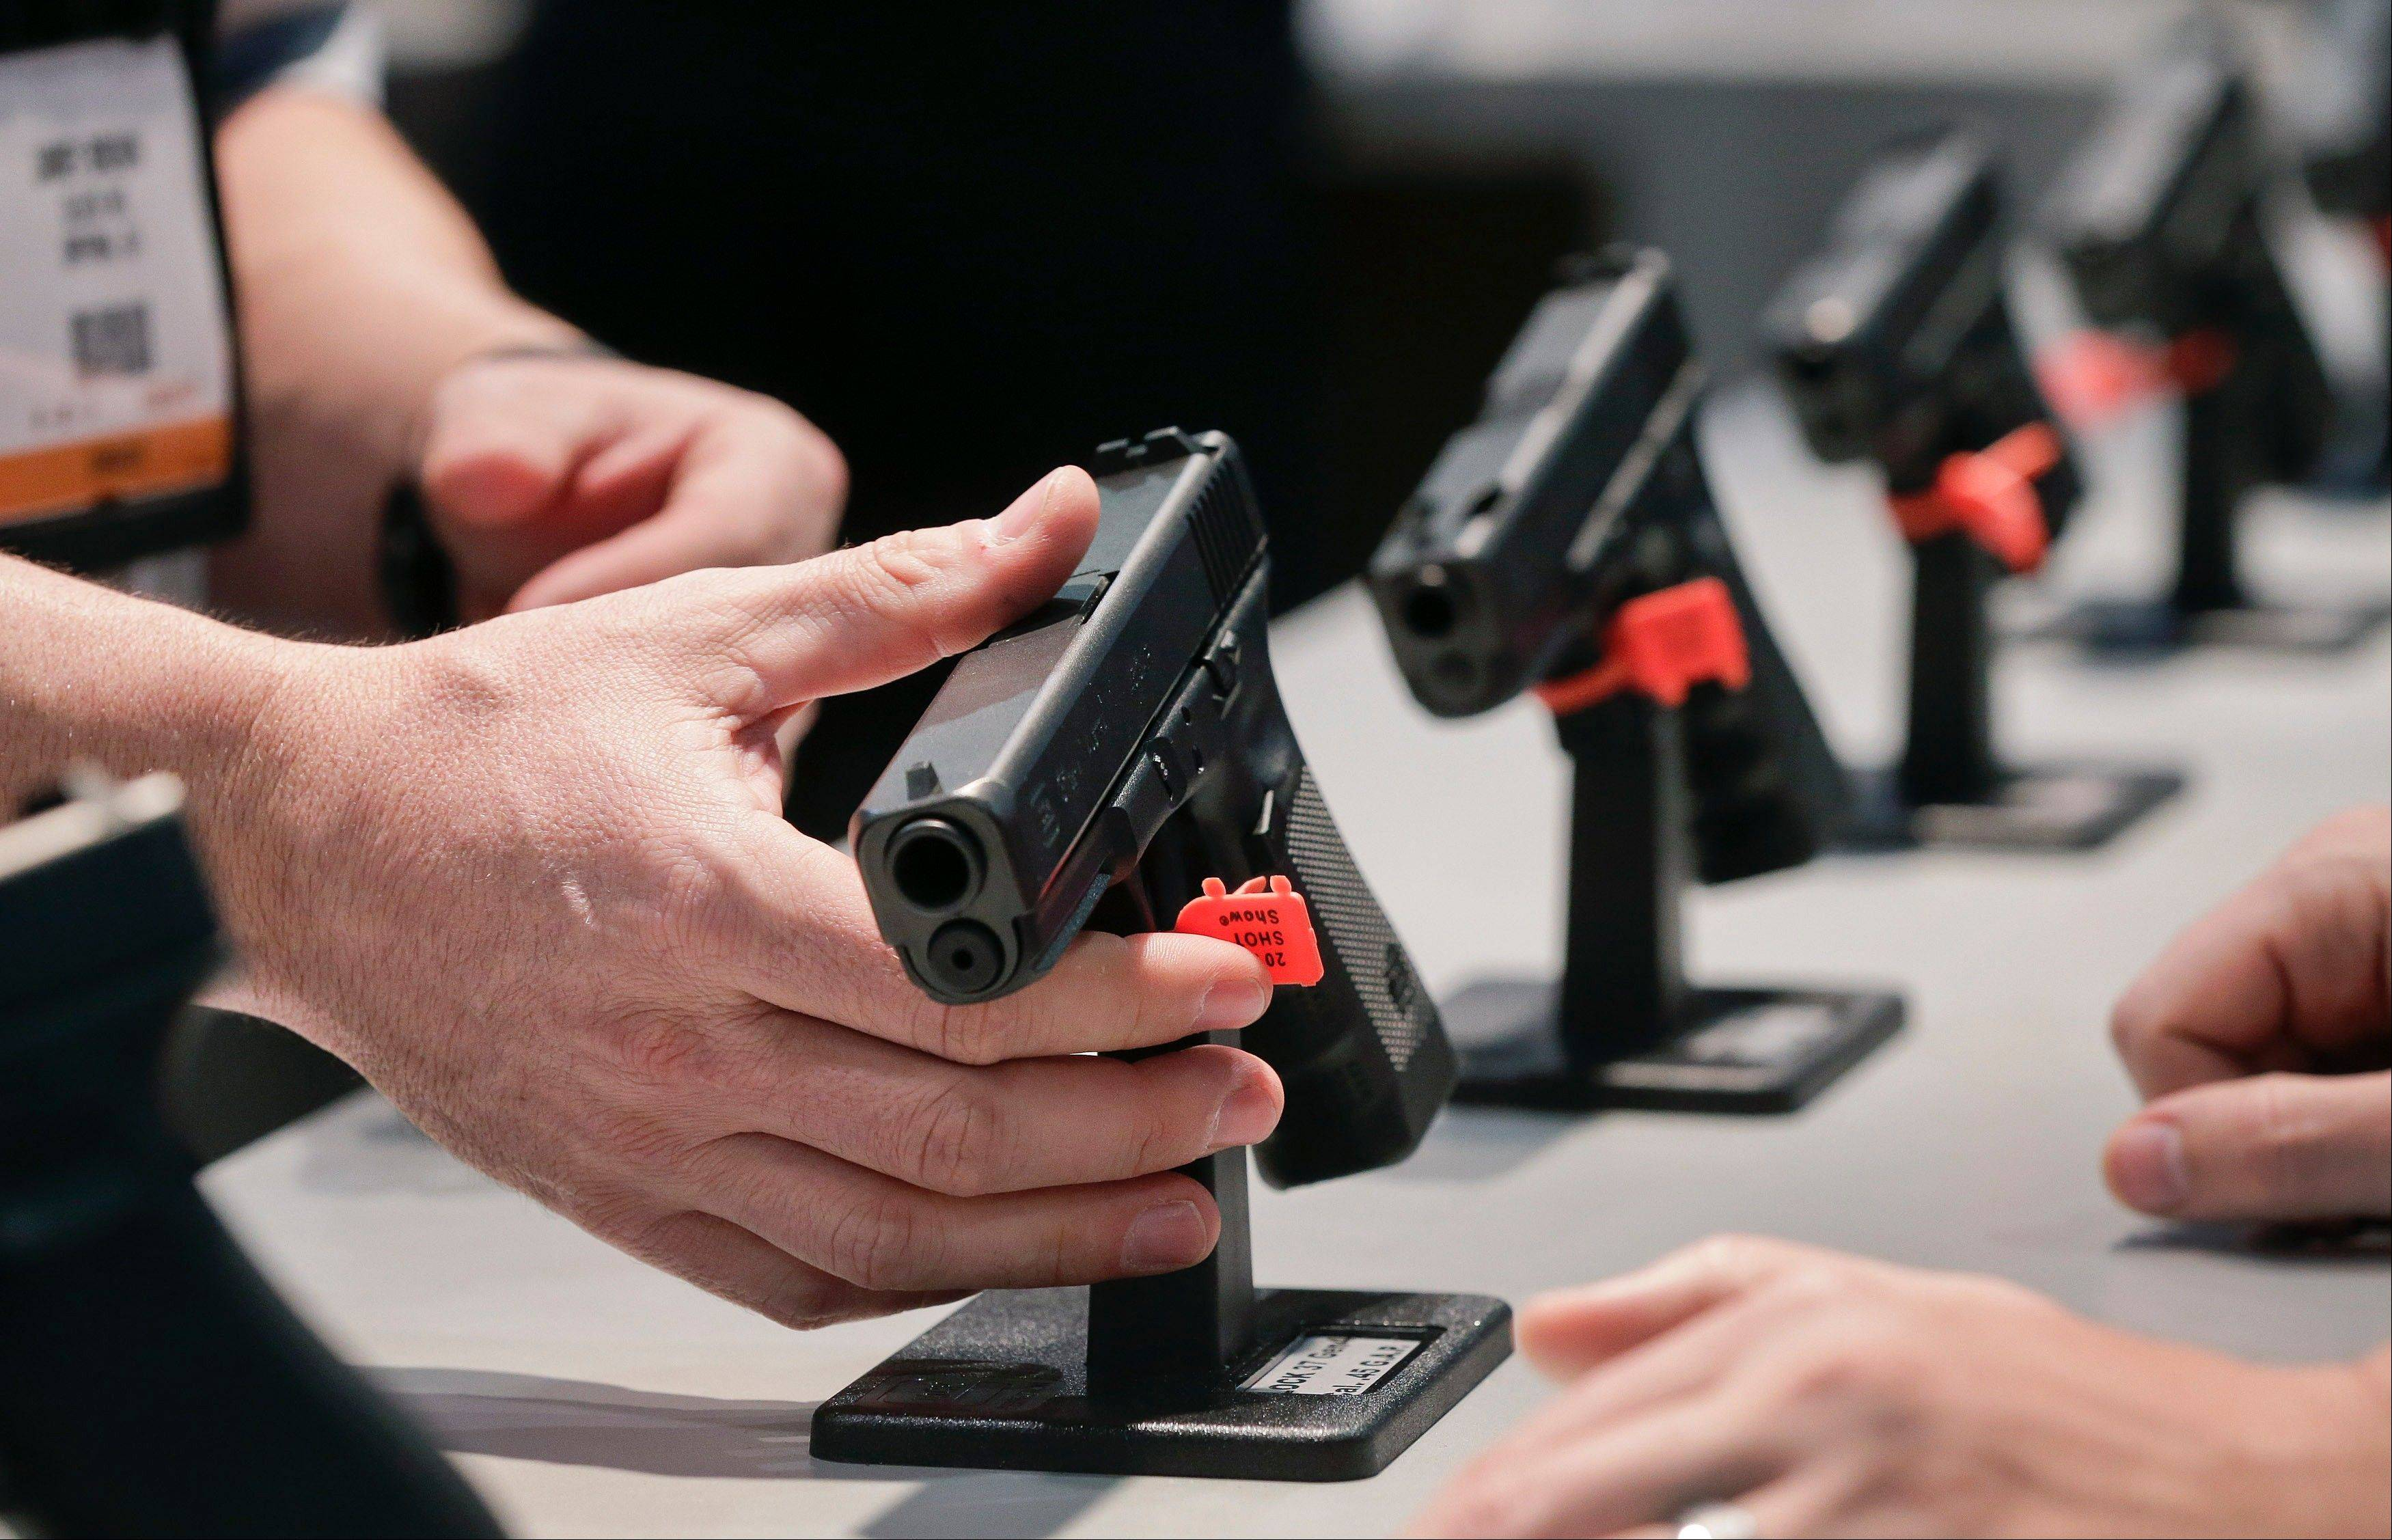 A Glock representative explains features of the Glock 37 Gen 4 .45 caliber pistol at the 35th annual SHOT Show in Las Vegas this past January.